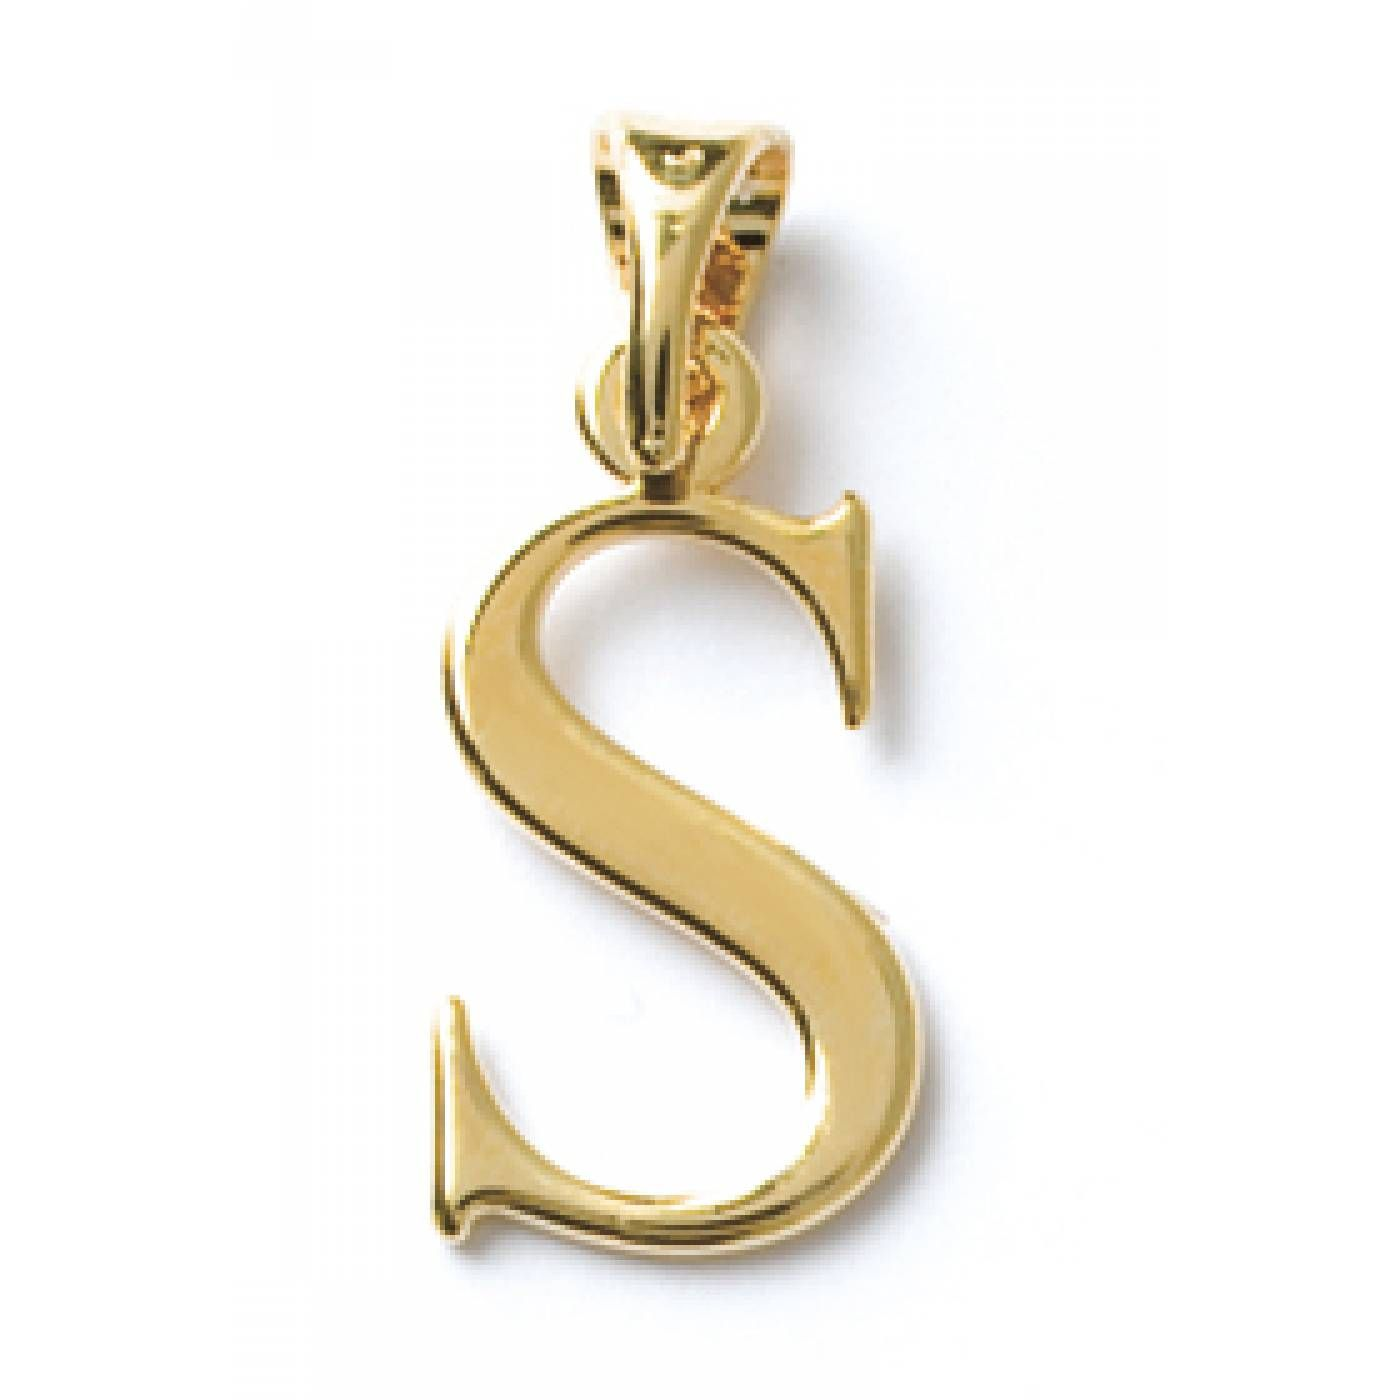 diamond candere kalyan online jewellery india company com s letter womens gold jewellers love pendants shopping pendant a yellow